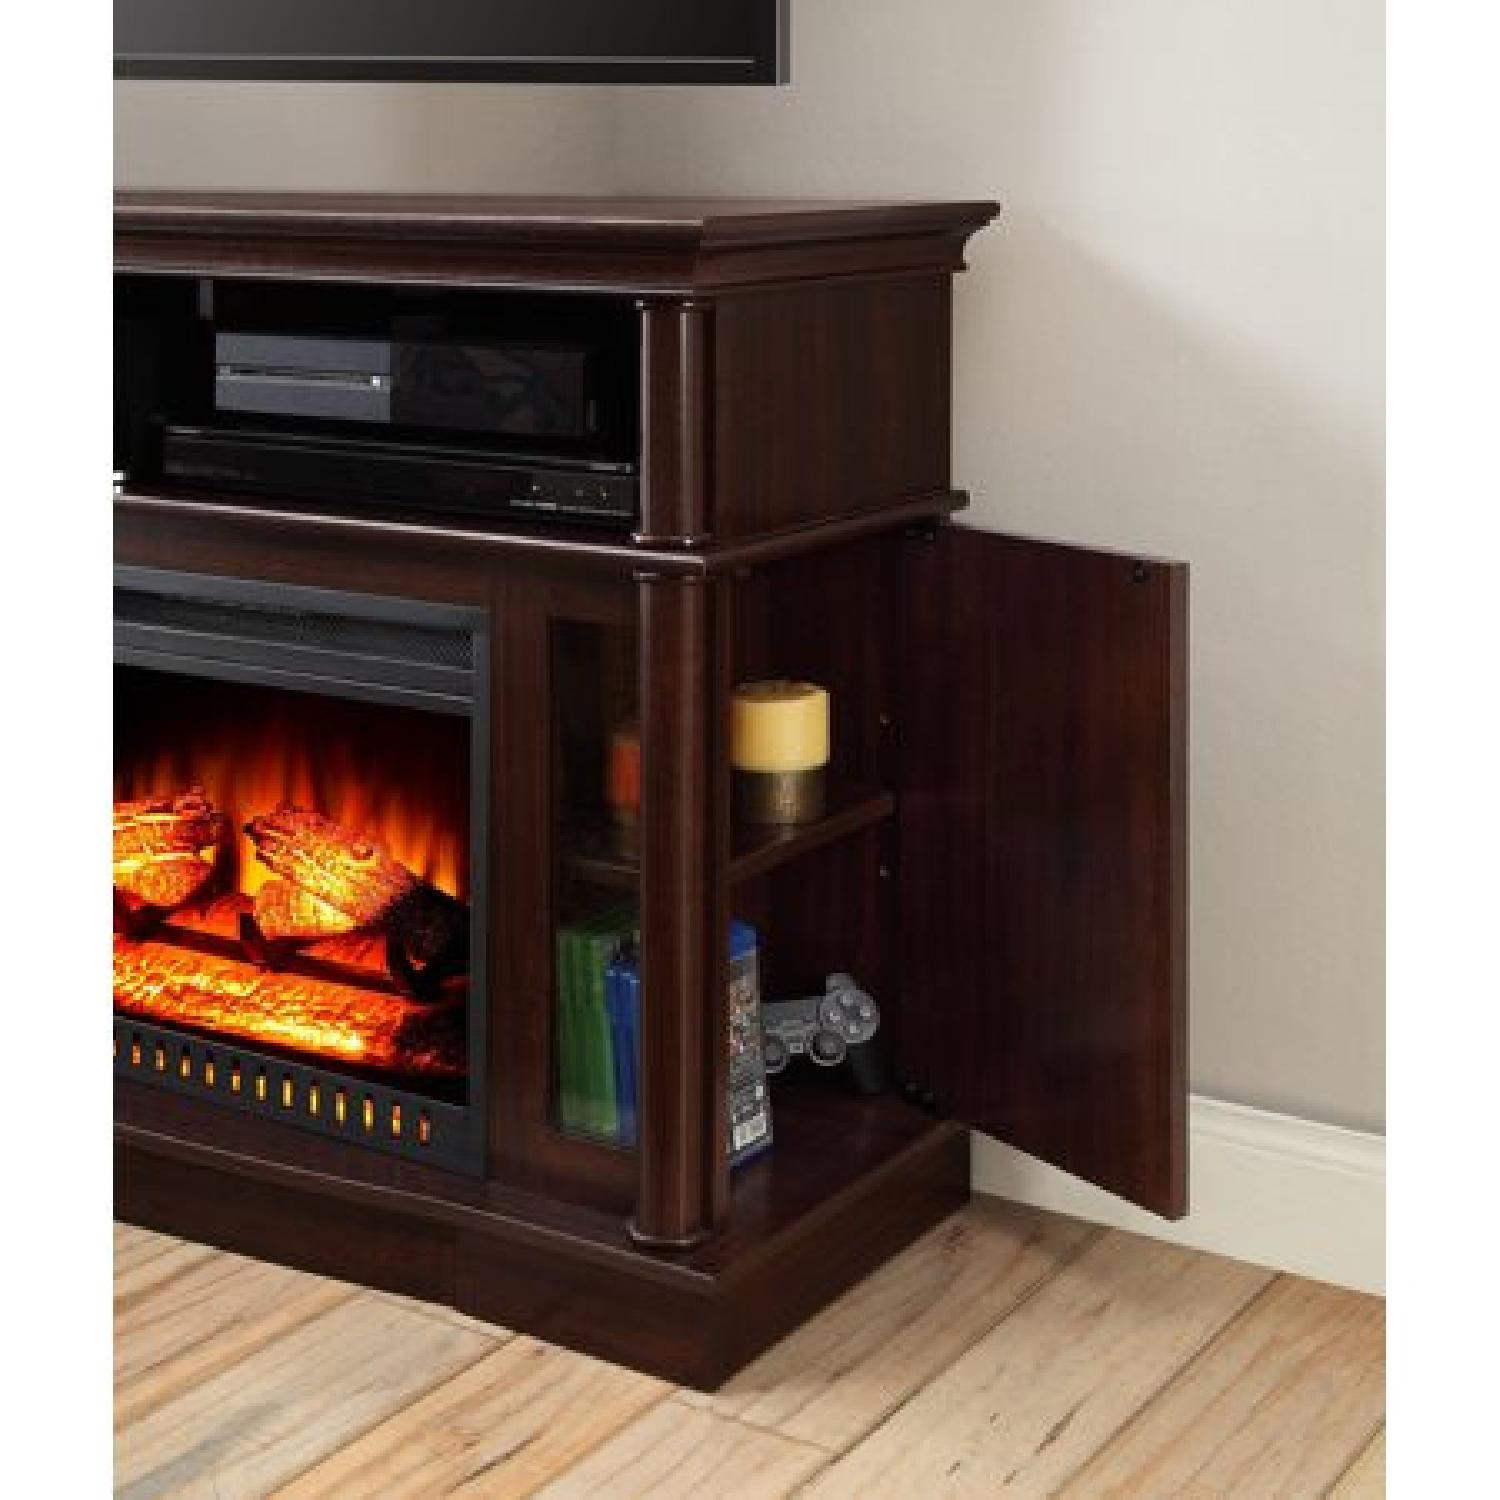 Better Homes & Gardens Media Console w/ Fireplace - image-3